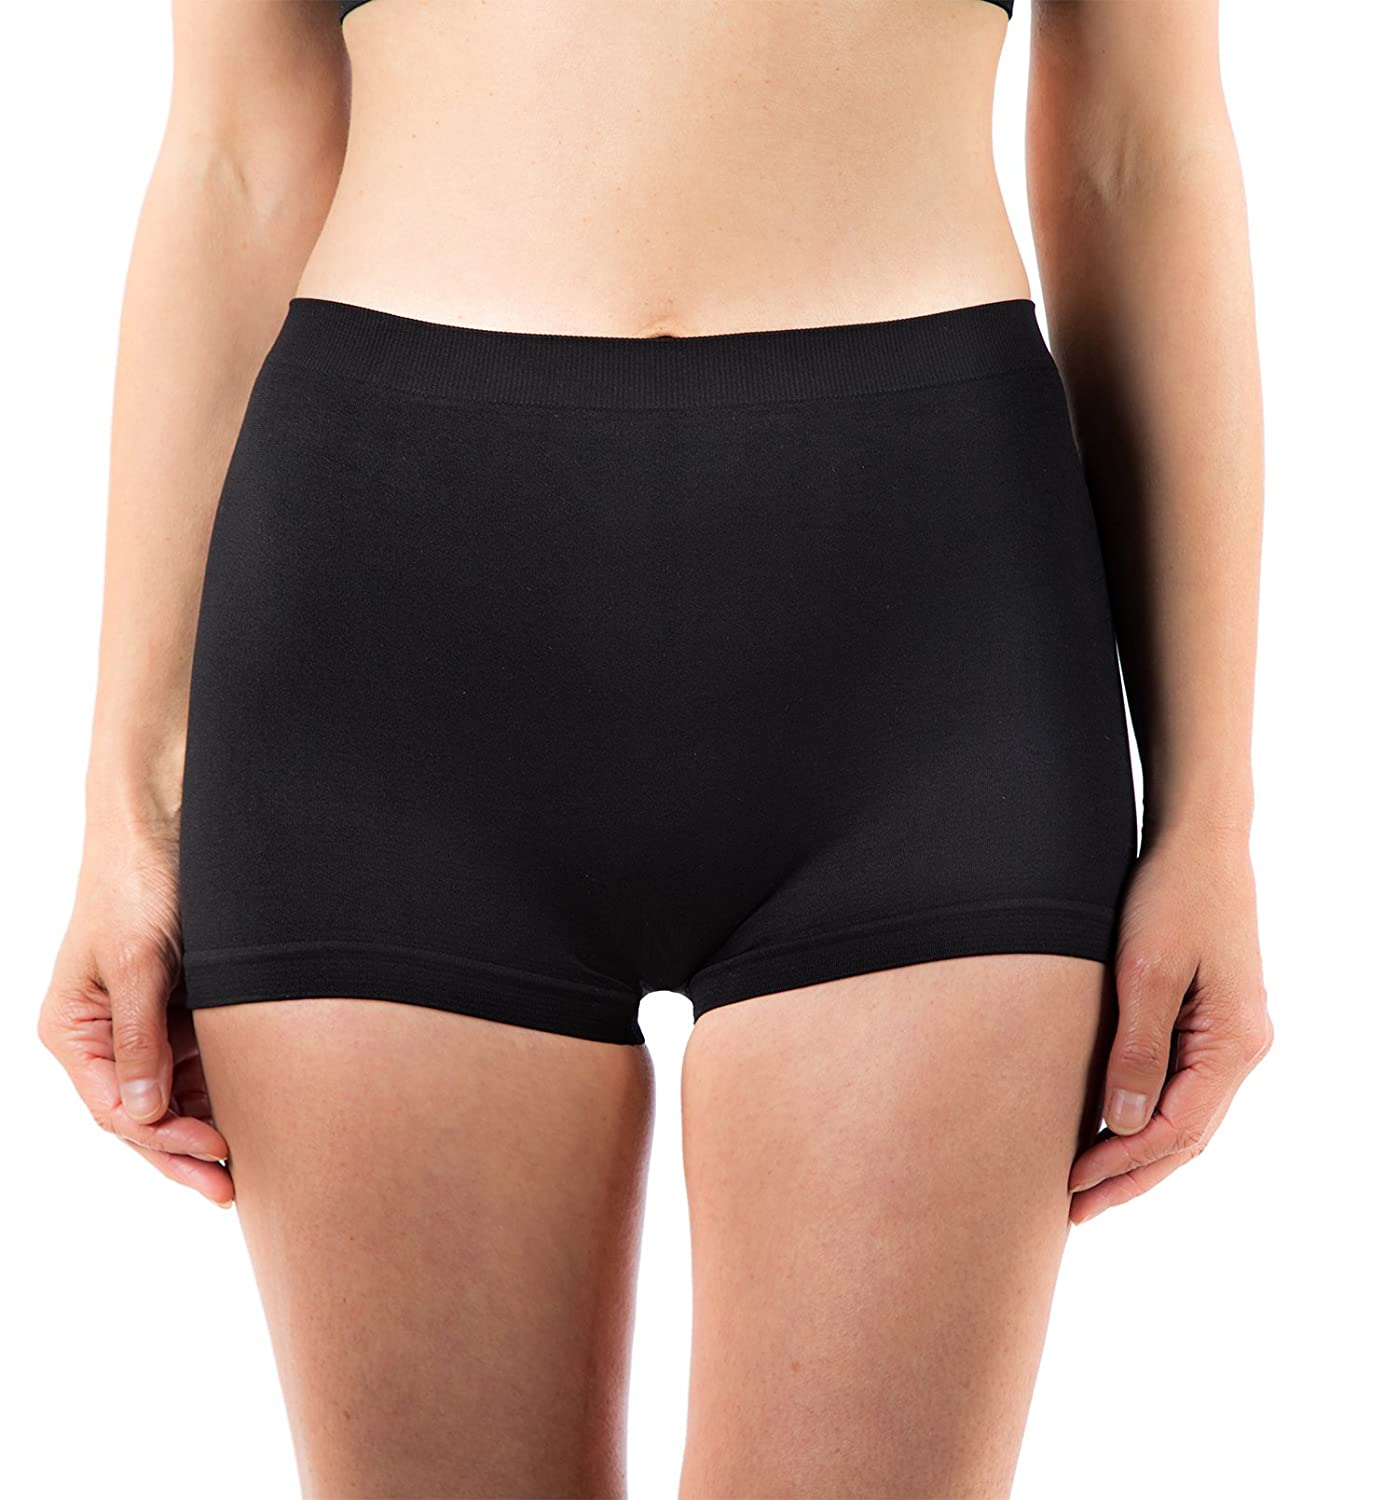 3 x Ladies Black High Waisted Microfibre Boxershorts/Boyshorts Womens Briefs Underwear L2001